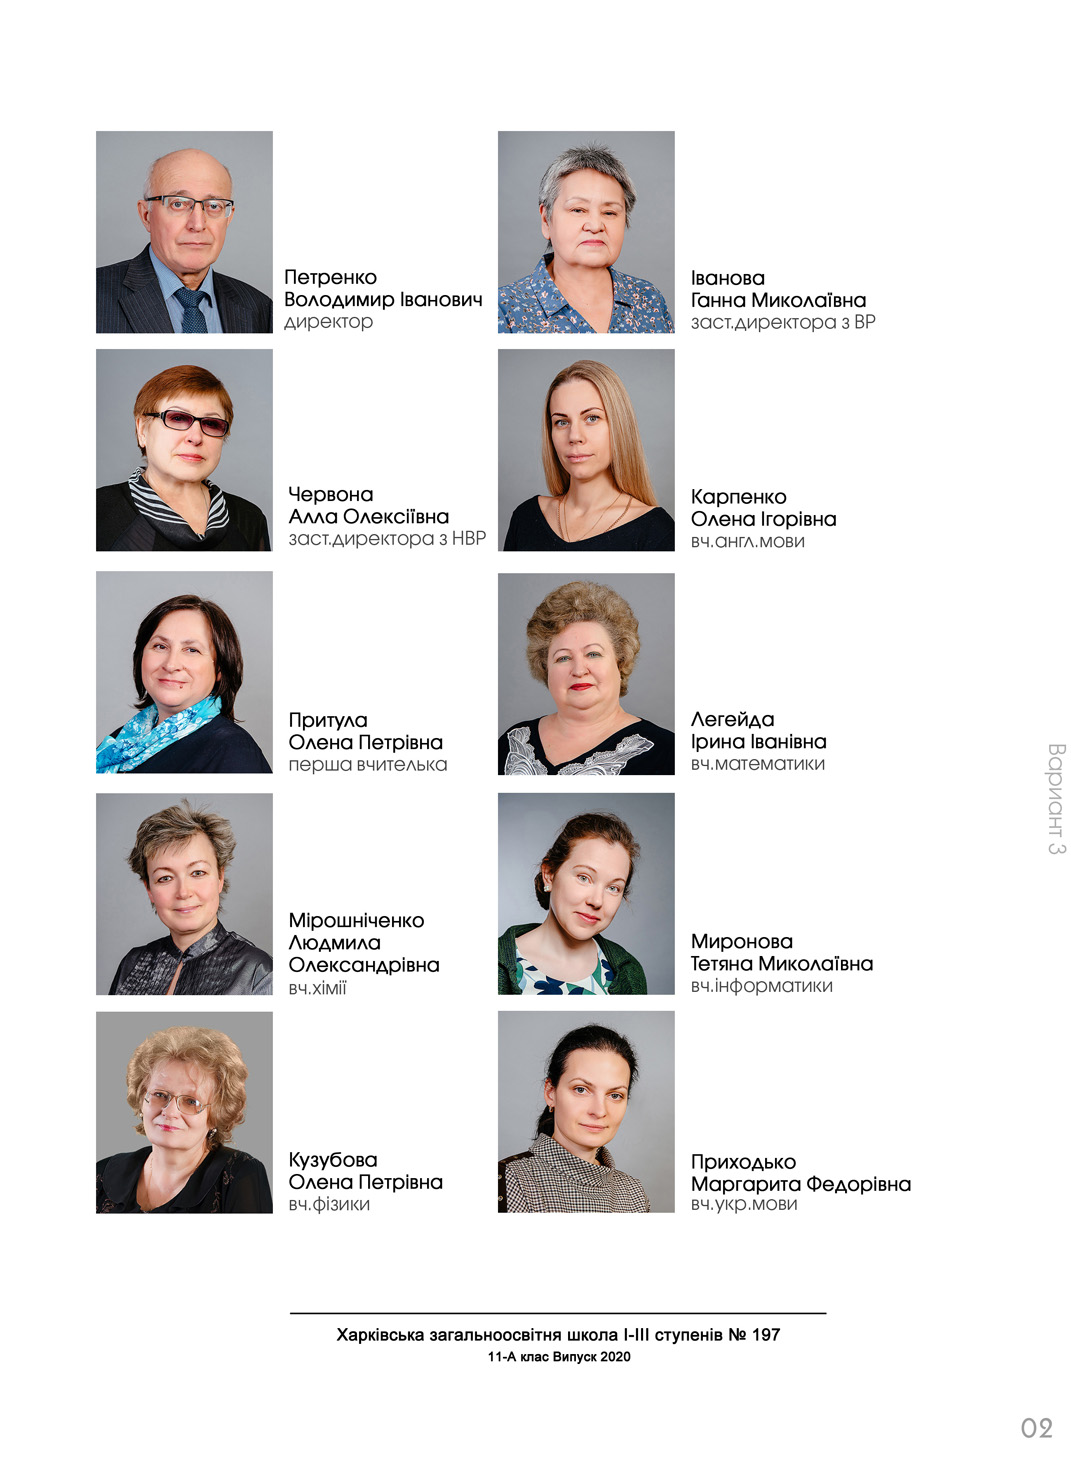 https://school-photo.com.ua/wp-content/uploads/2019/09/02-copy.jpg